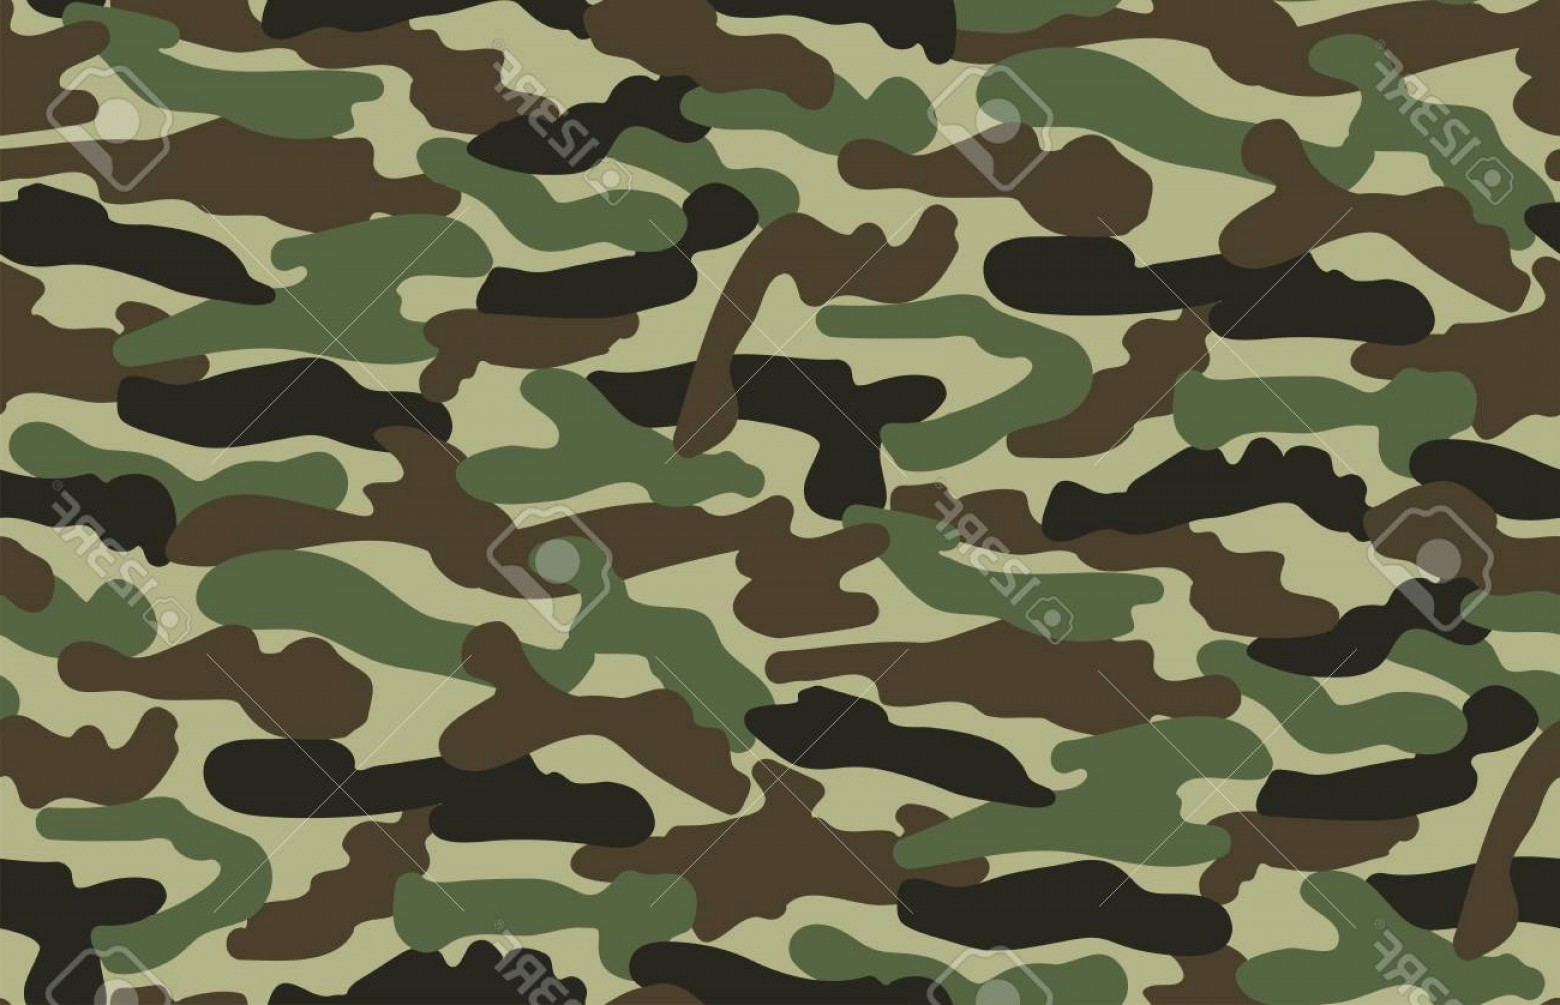 Army Camouflage Pattern Vector: Photostock Vector Abstract Vector Military Camouflage Background Seamless Camo Pattern For Army Clothing